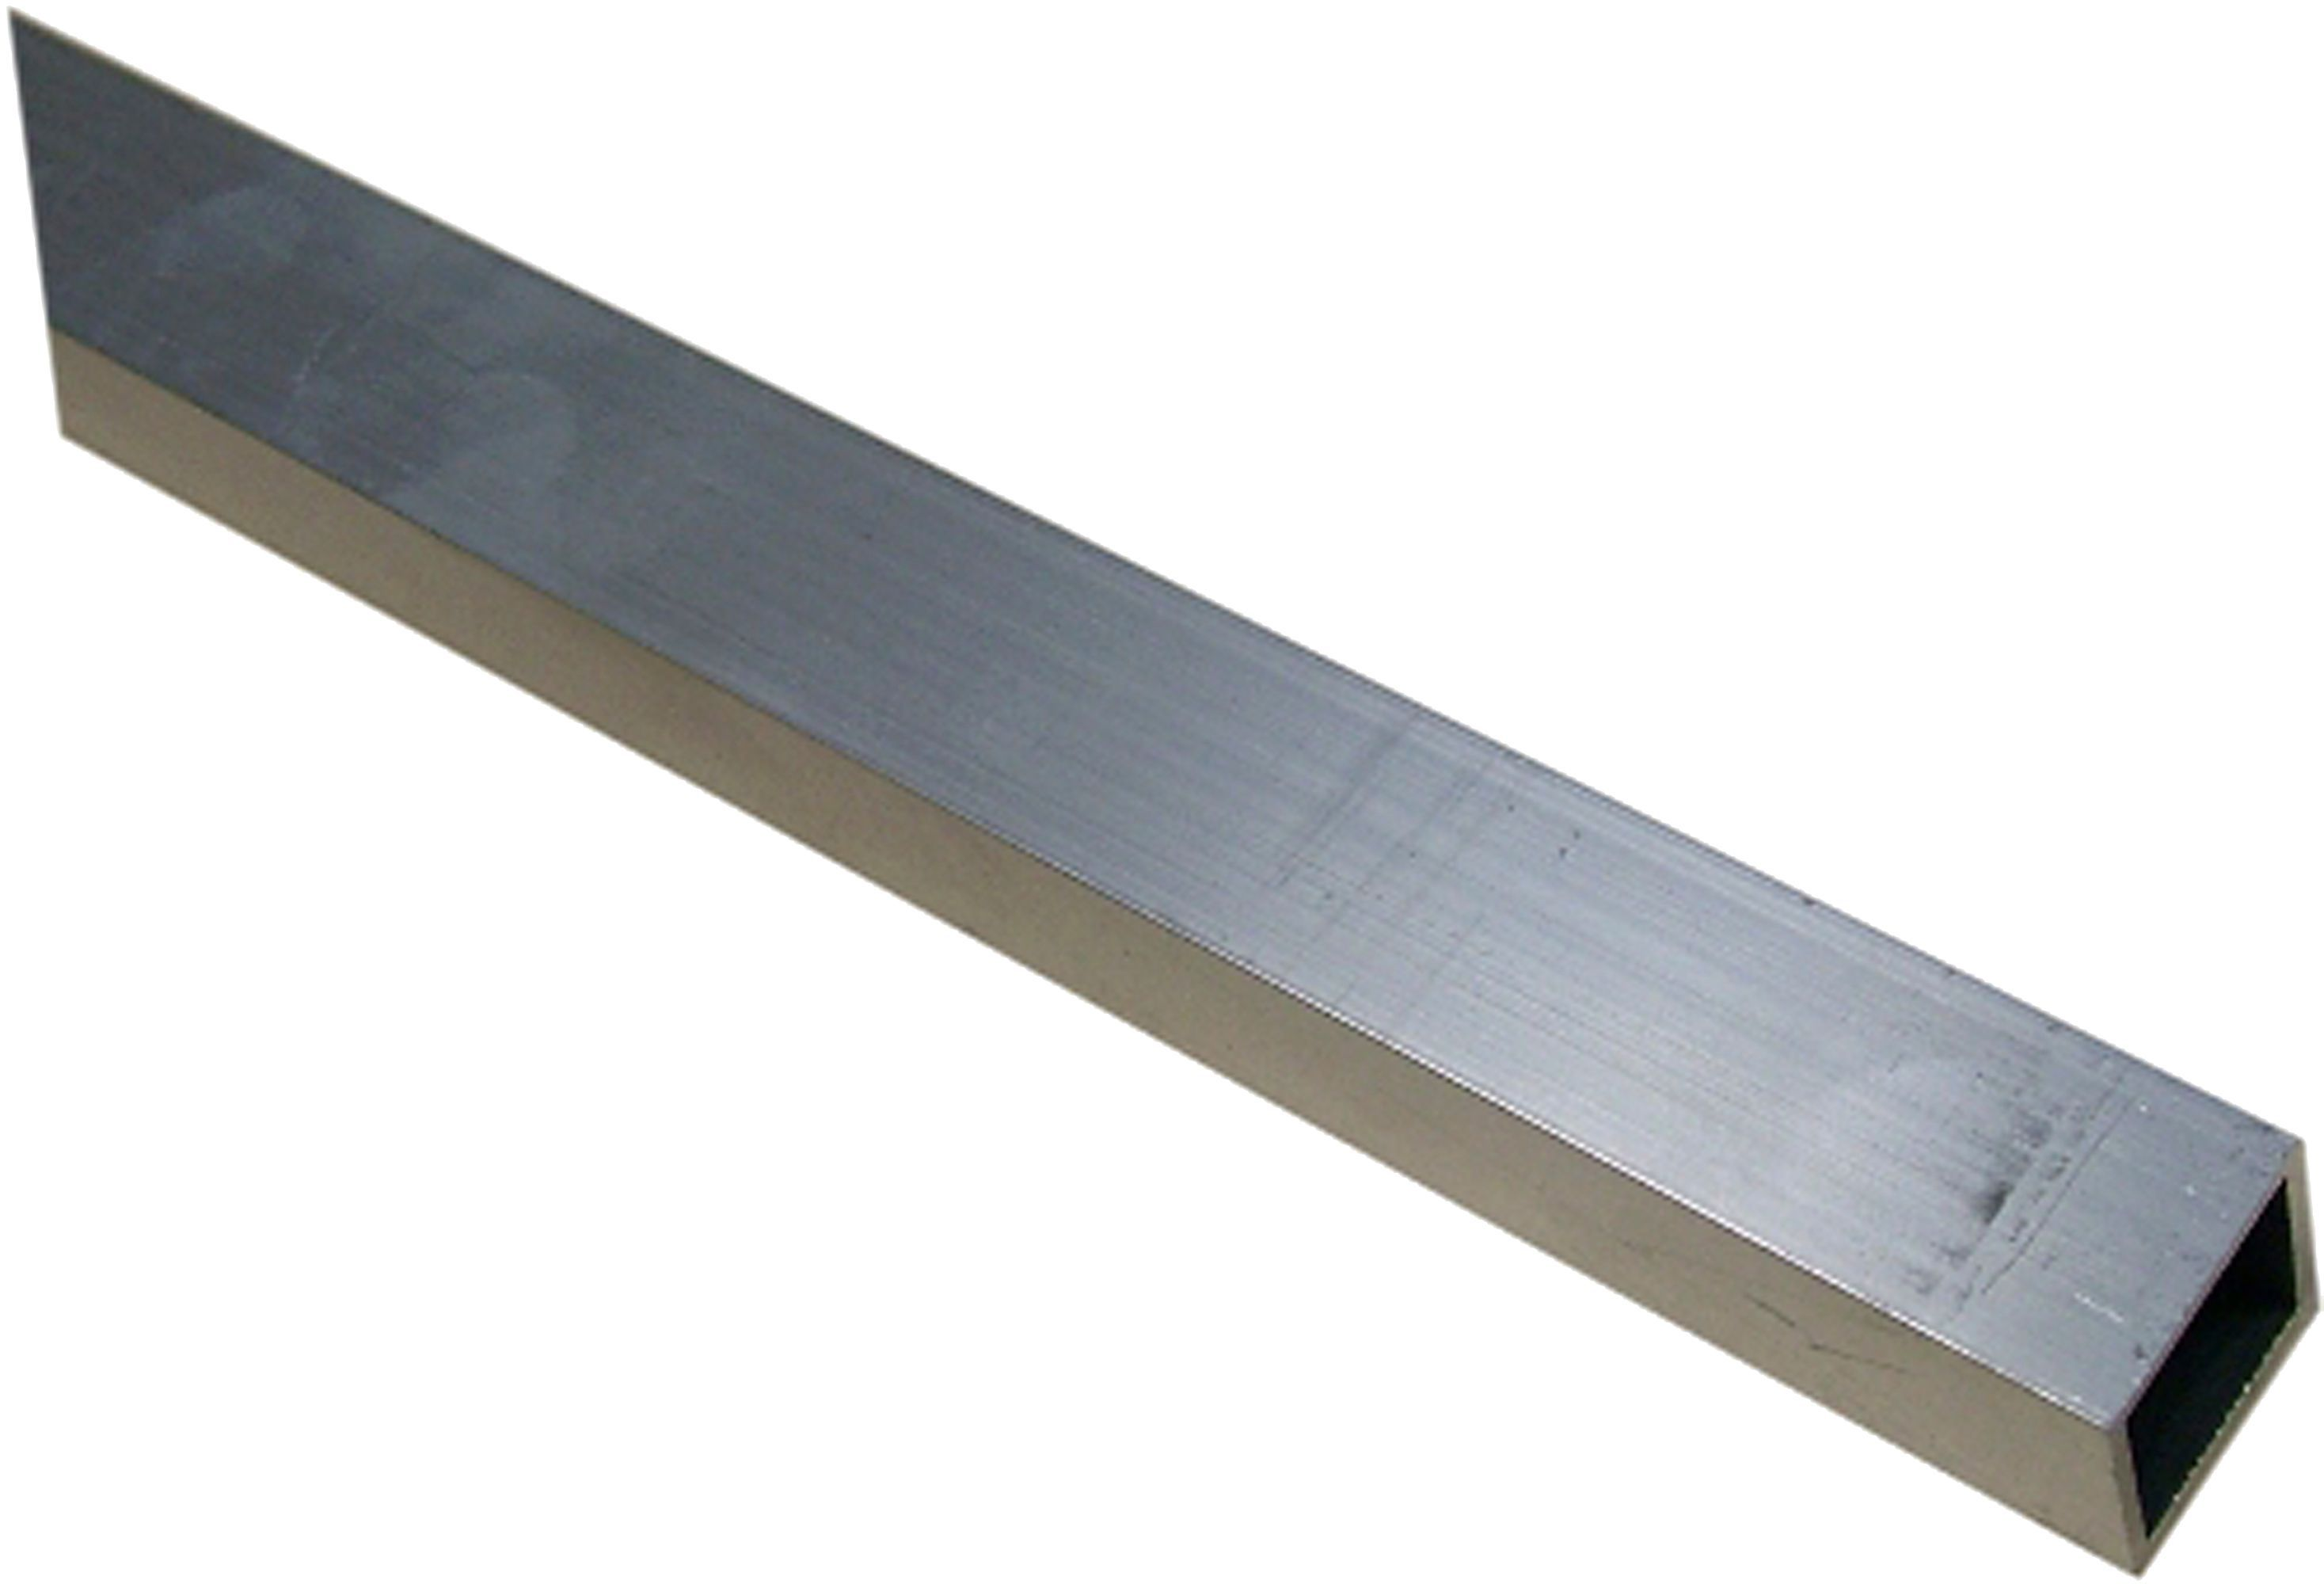 Aluminium Square Tube H 20mm W 20mm L 1m Departments